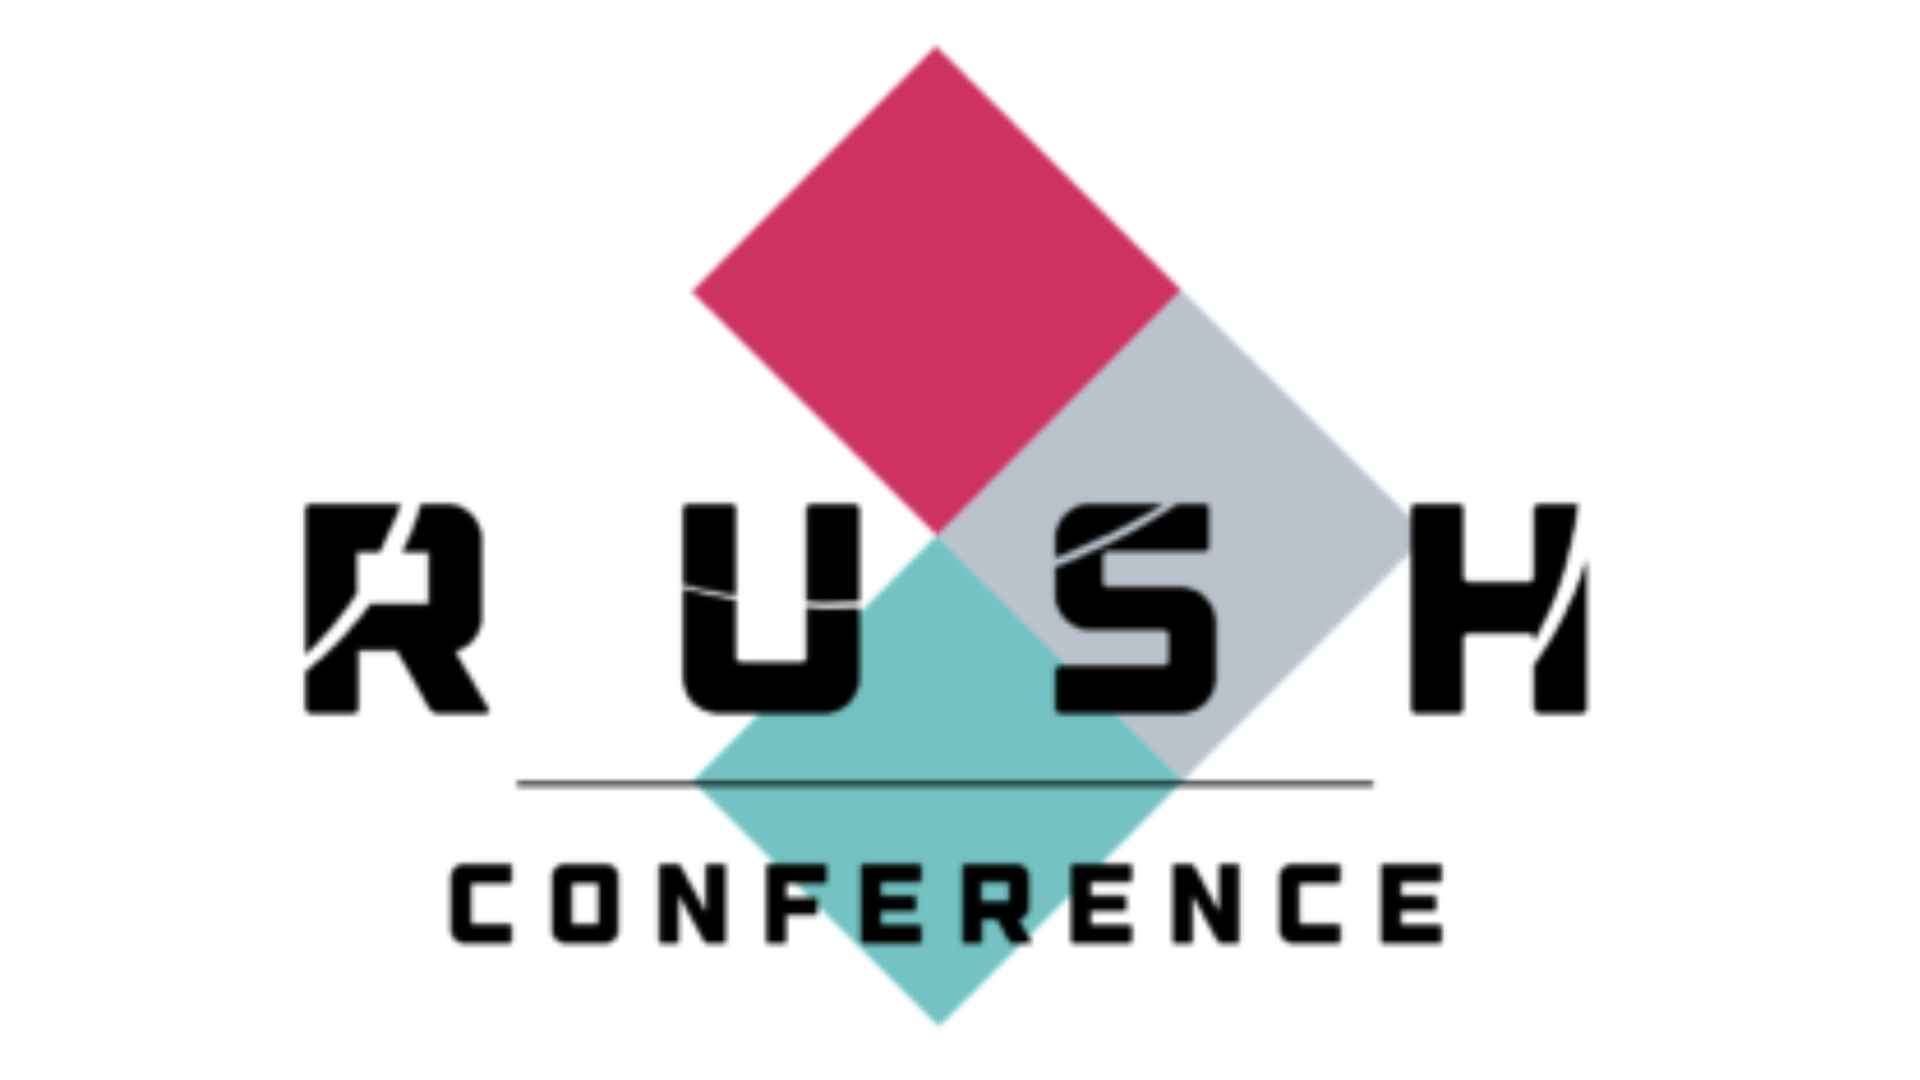 Planning Center - SM Rush Conference